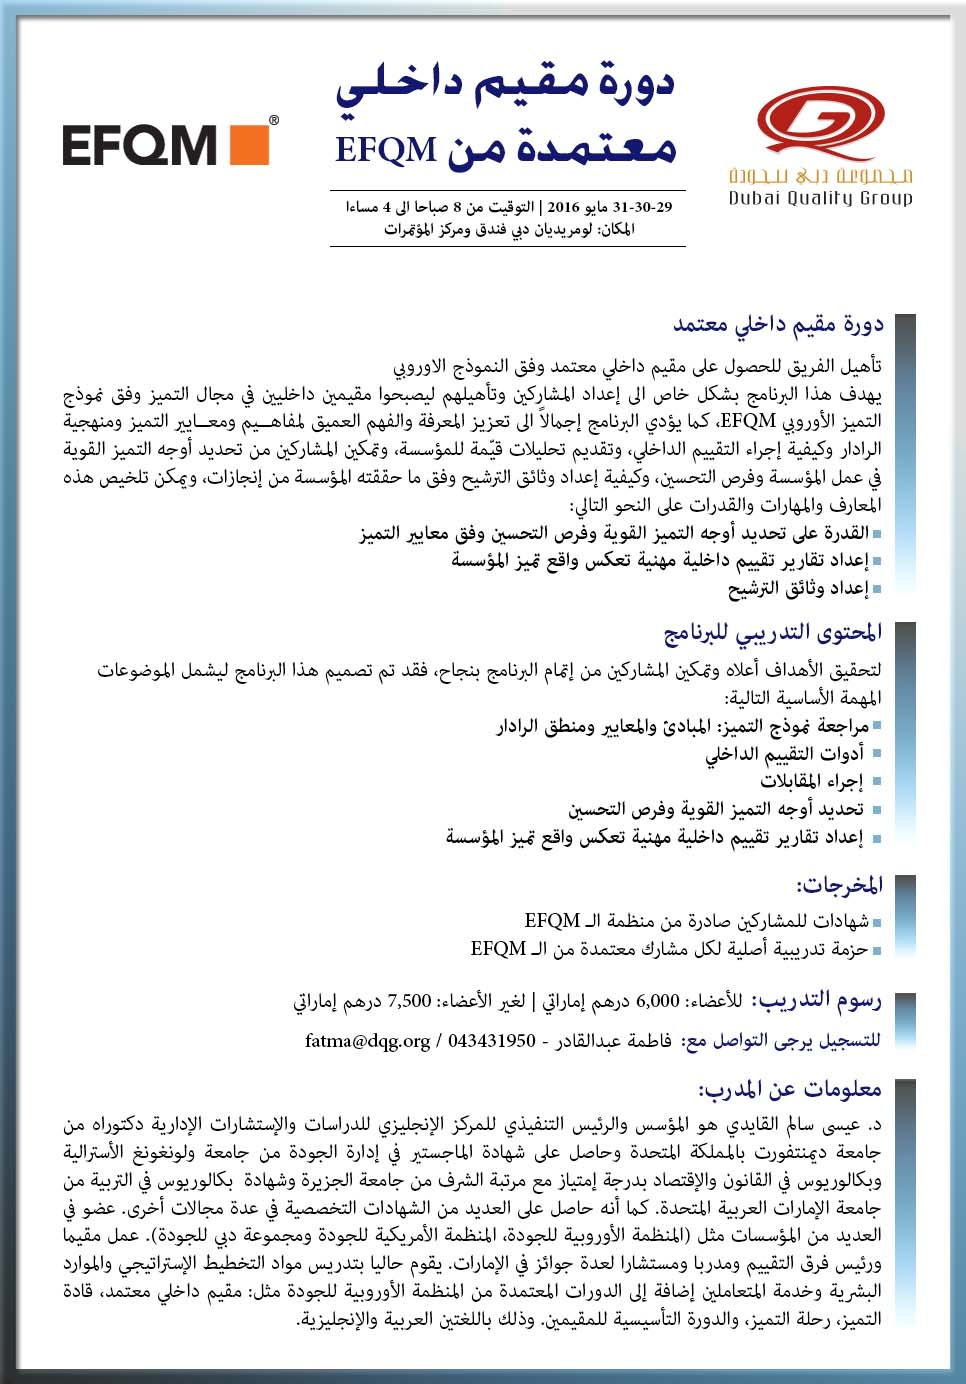 EFQM Assessor Training (Arabic) Flyer